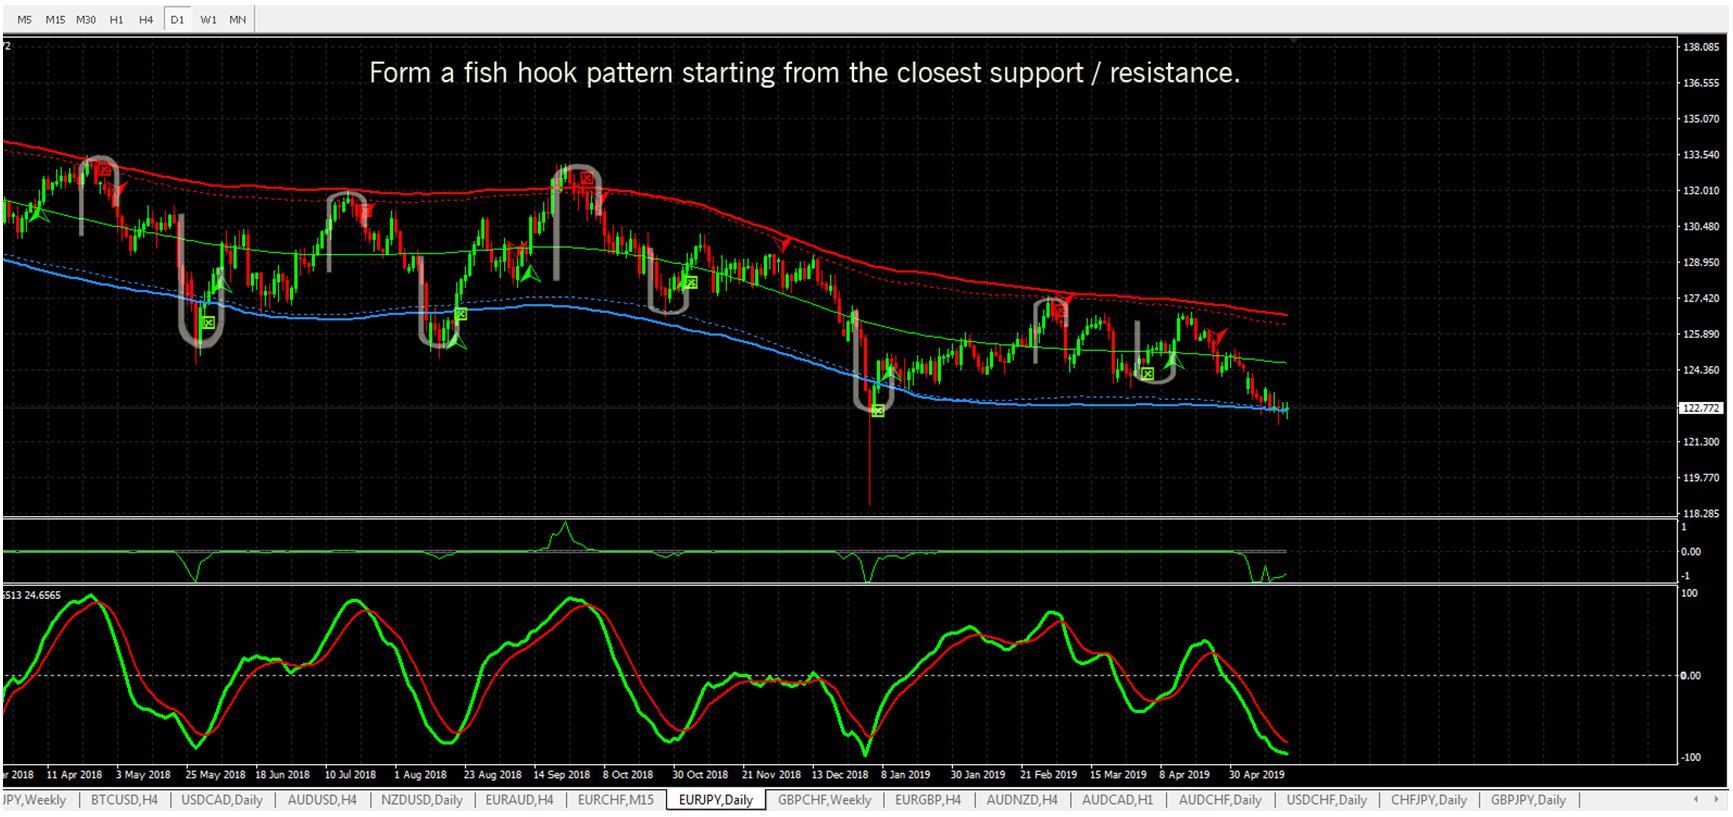 Forex Signals No Repaint, MT4 indicators. | Accurate Forex Signals, Very Simple and Consistent